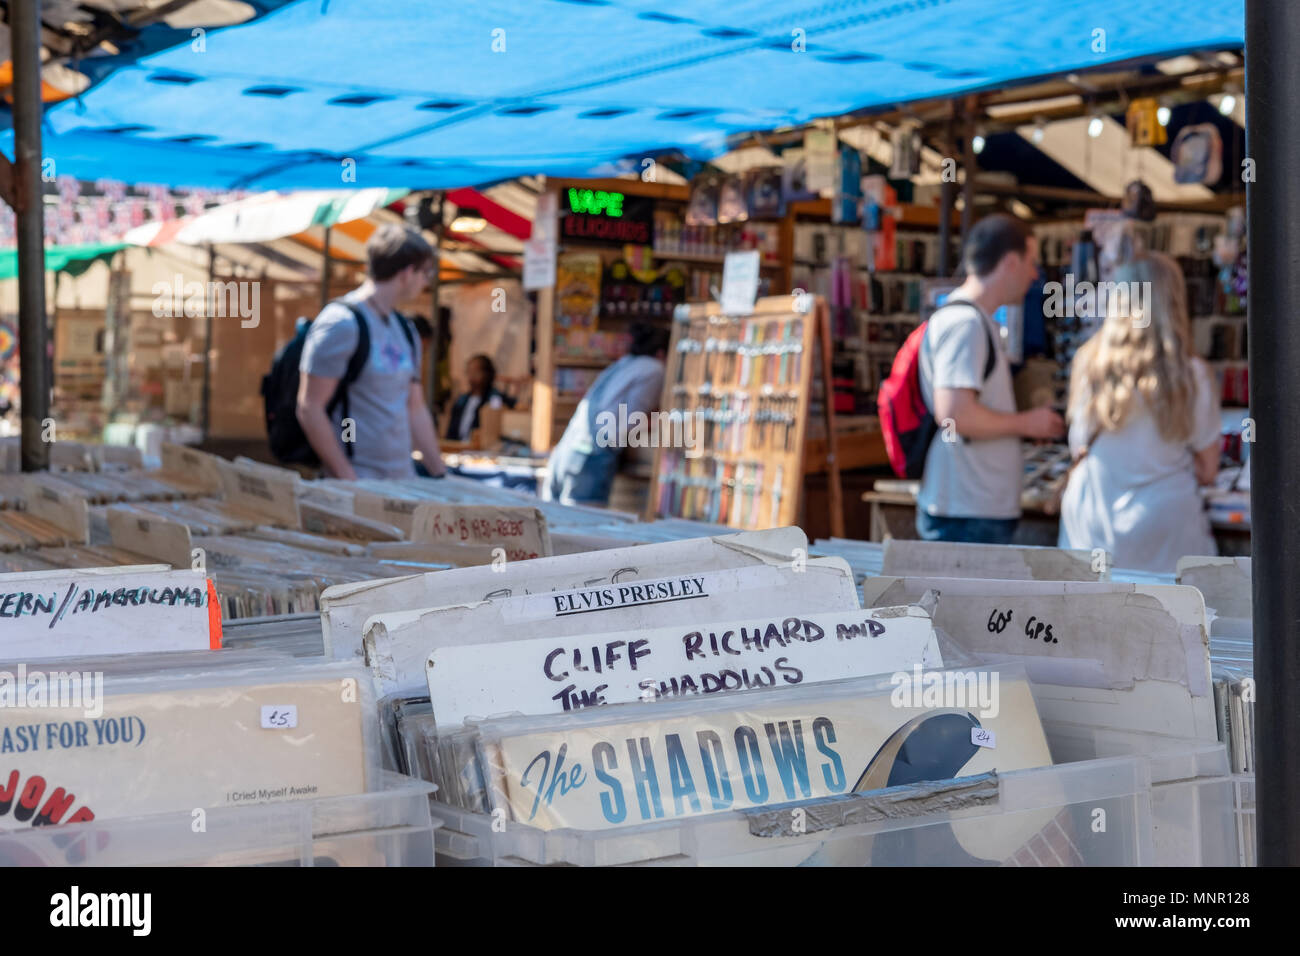 Shallow focus view of nostalgic, vinyl records being sold in an English flea market. The background shows members of the public visiting the stalls. - Stock Image